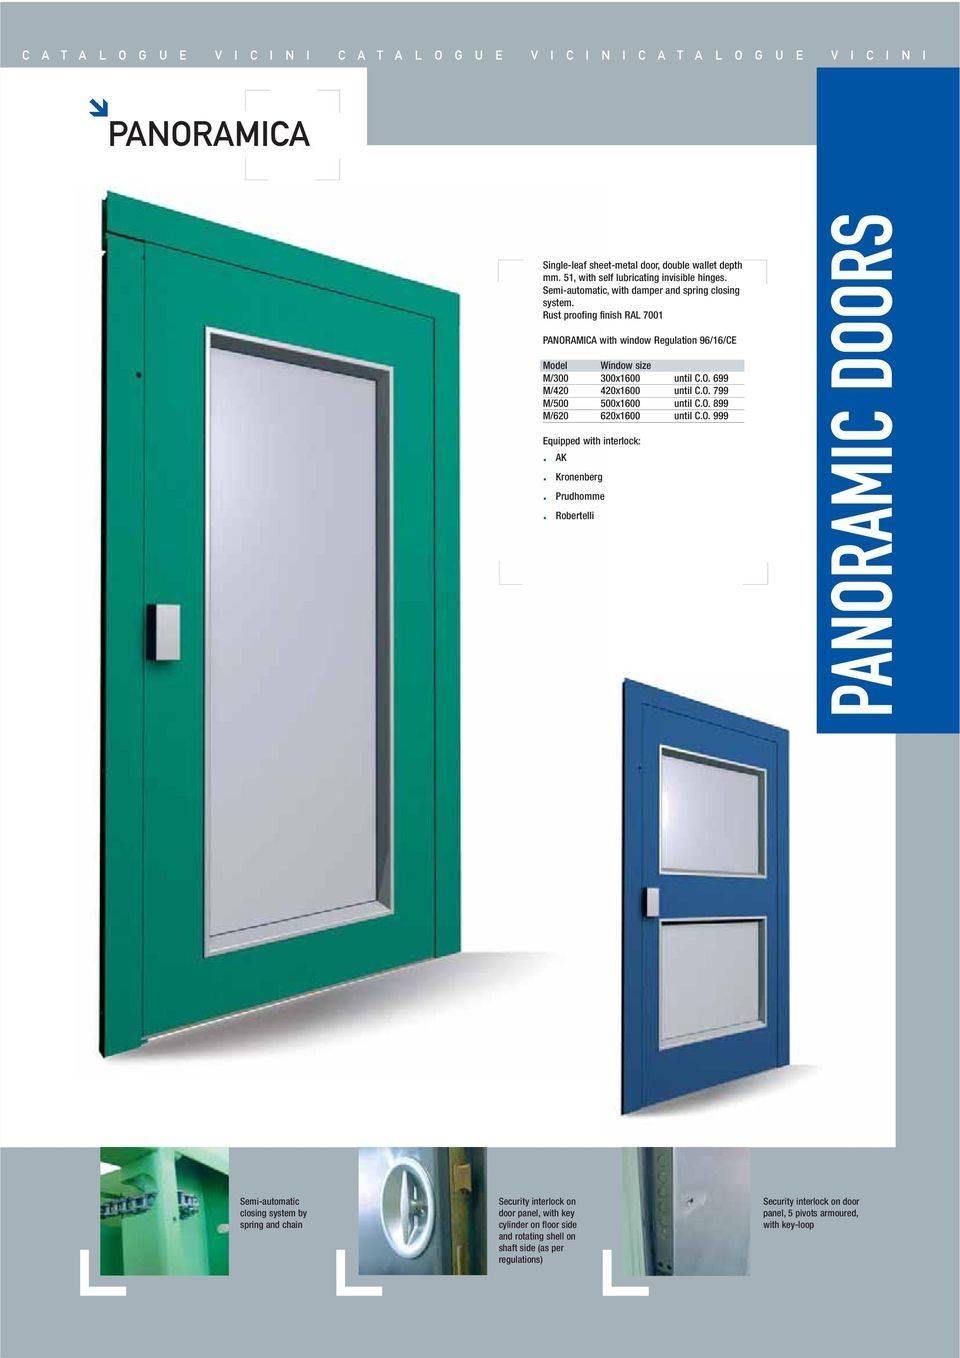 Rust proofing finish RAL 7001 PANORAMICA with window Regulation 96/16/CE Model Window size M/300 300x1600 until C.O. 699 M/420 420x1600 until C.O. 799 M/500 500x1600 until C.O. 899 M/620 620x1600 until C.